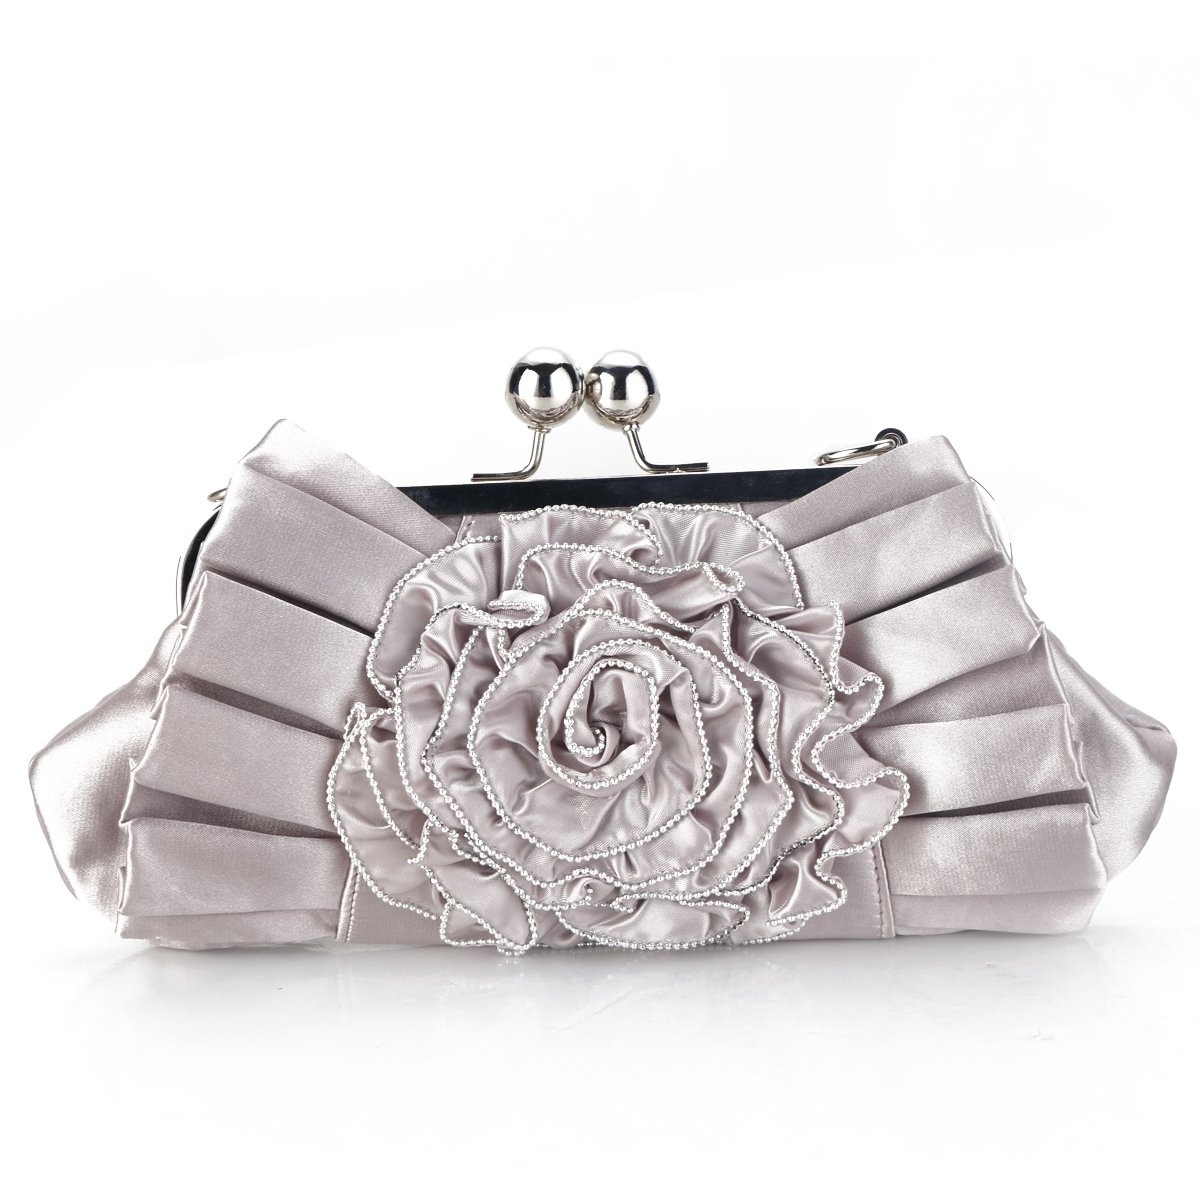 Evening Wedding Clutch Purses And Handbags for Women Satin Crossbody Bag Shoulder Bags in Baby Pink